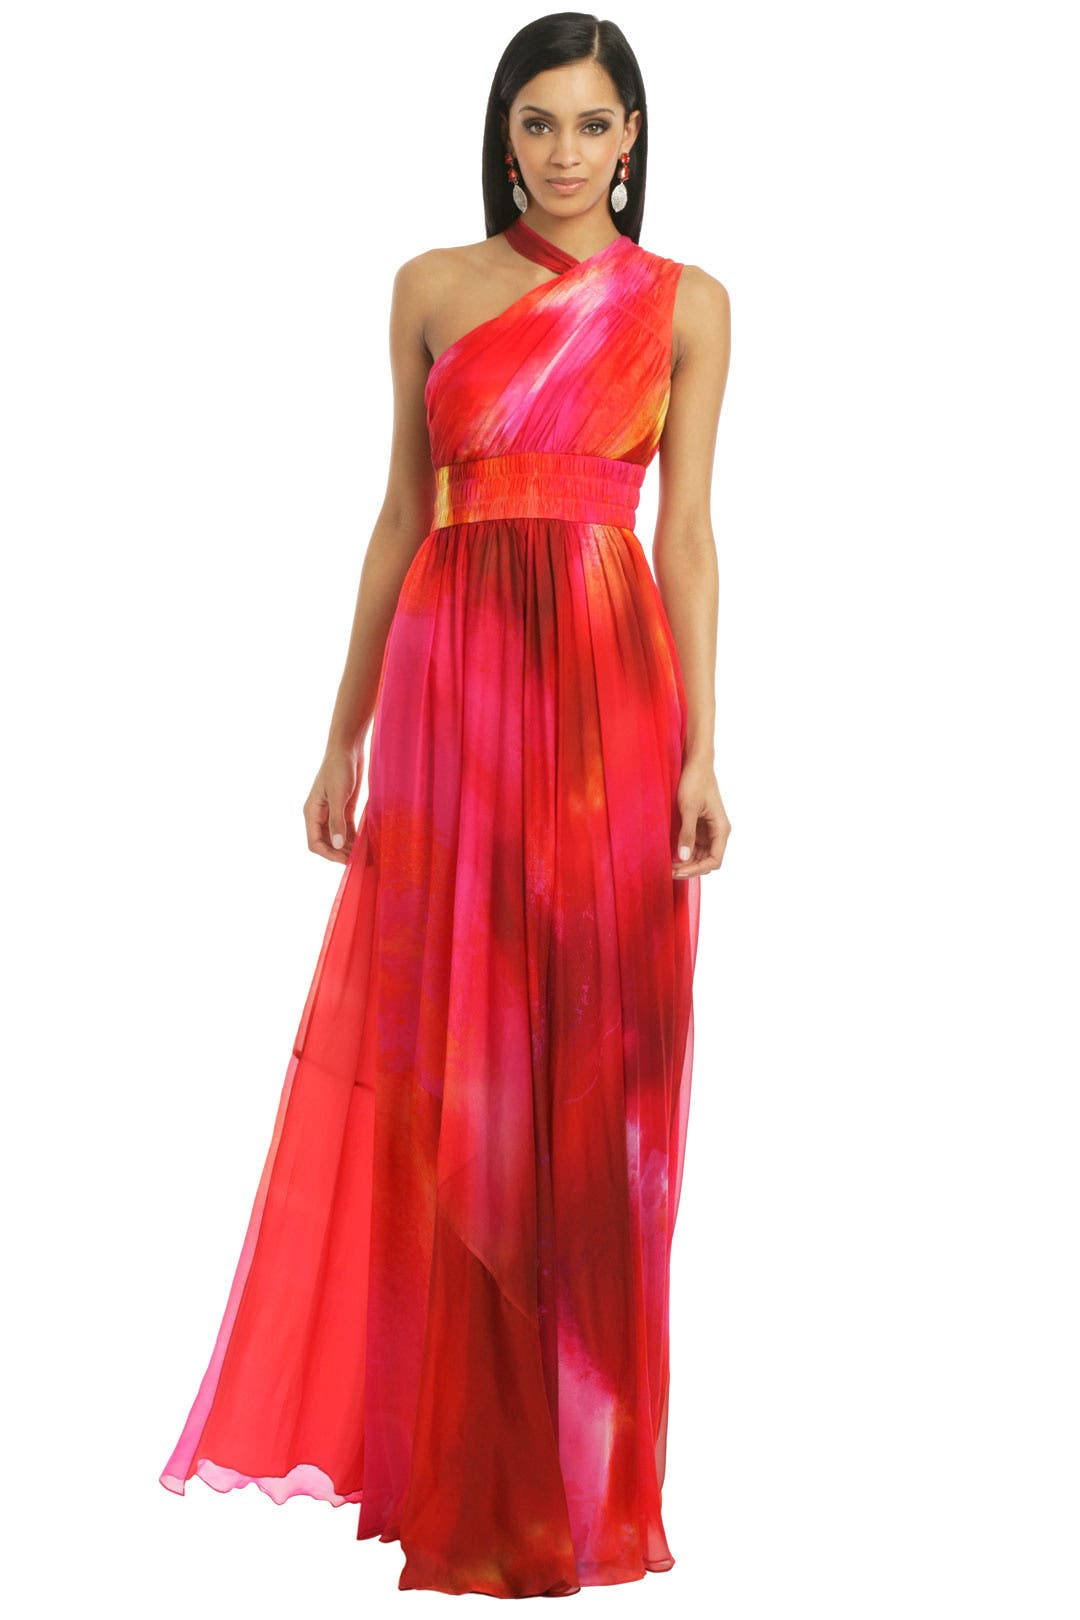 Gypsy Dancer Gown By Matthew Williamson For 70 Rent The Runway